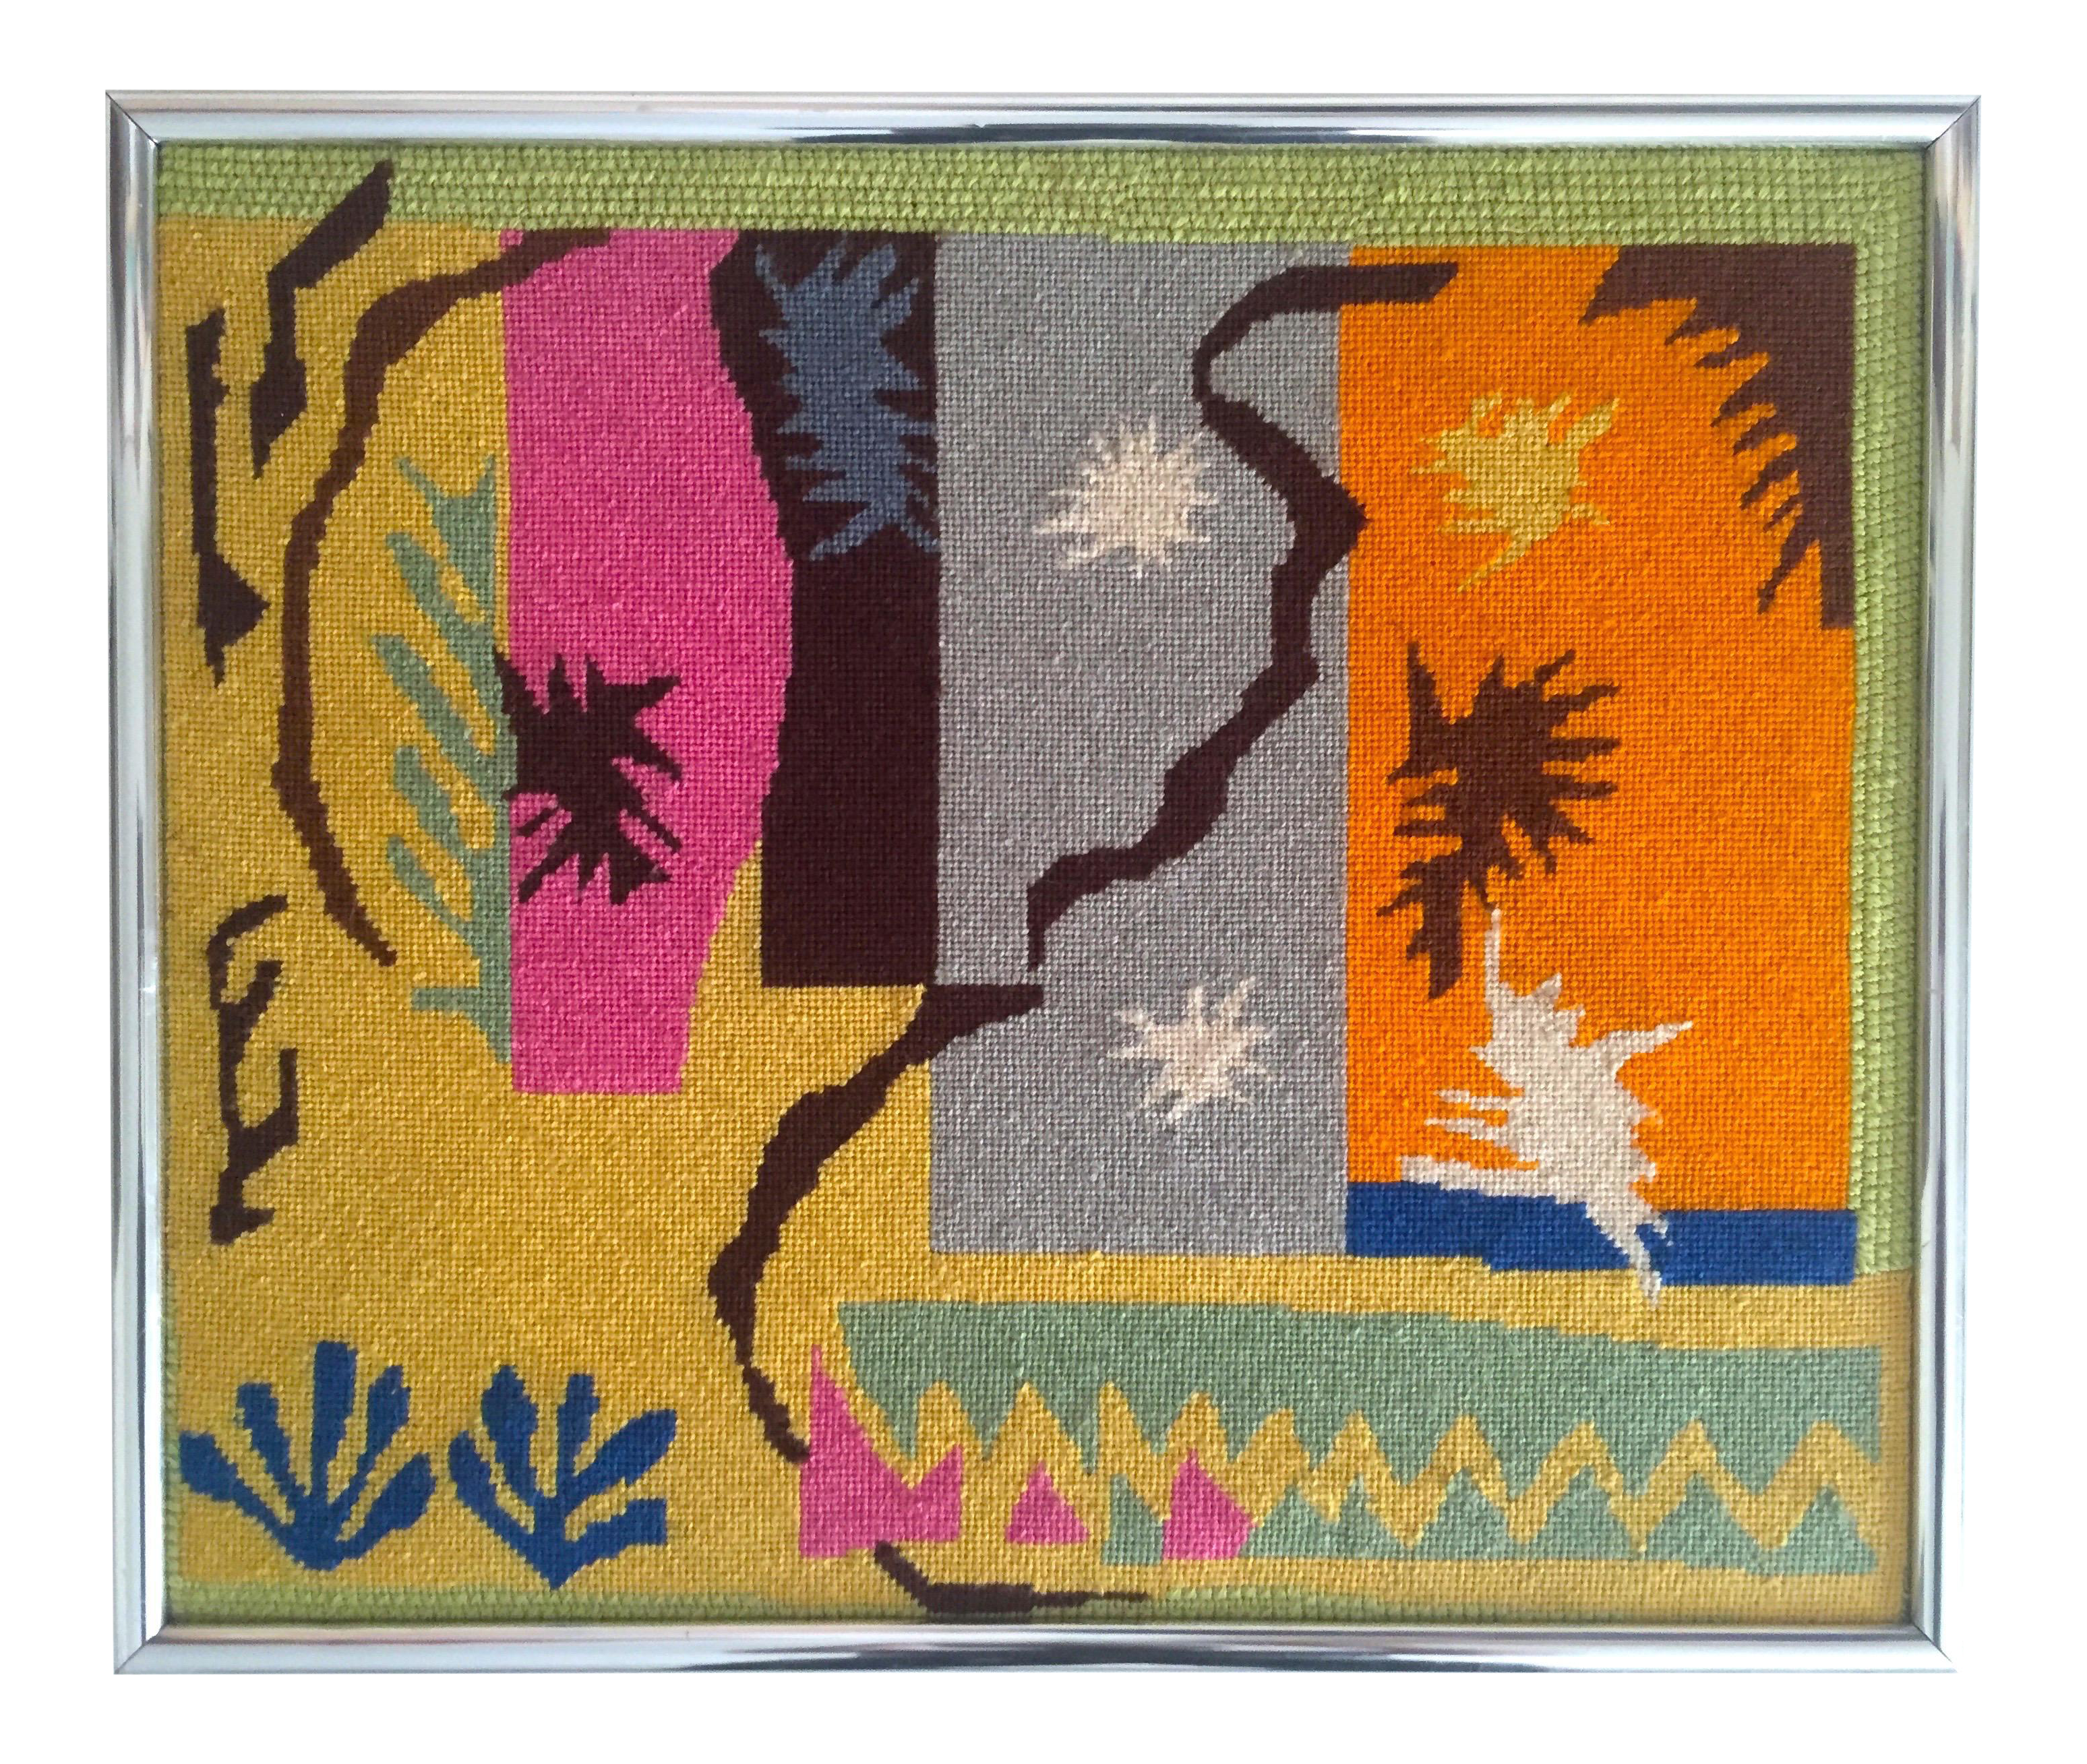 Matisse drawing famous. Vintage mid century modern